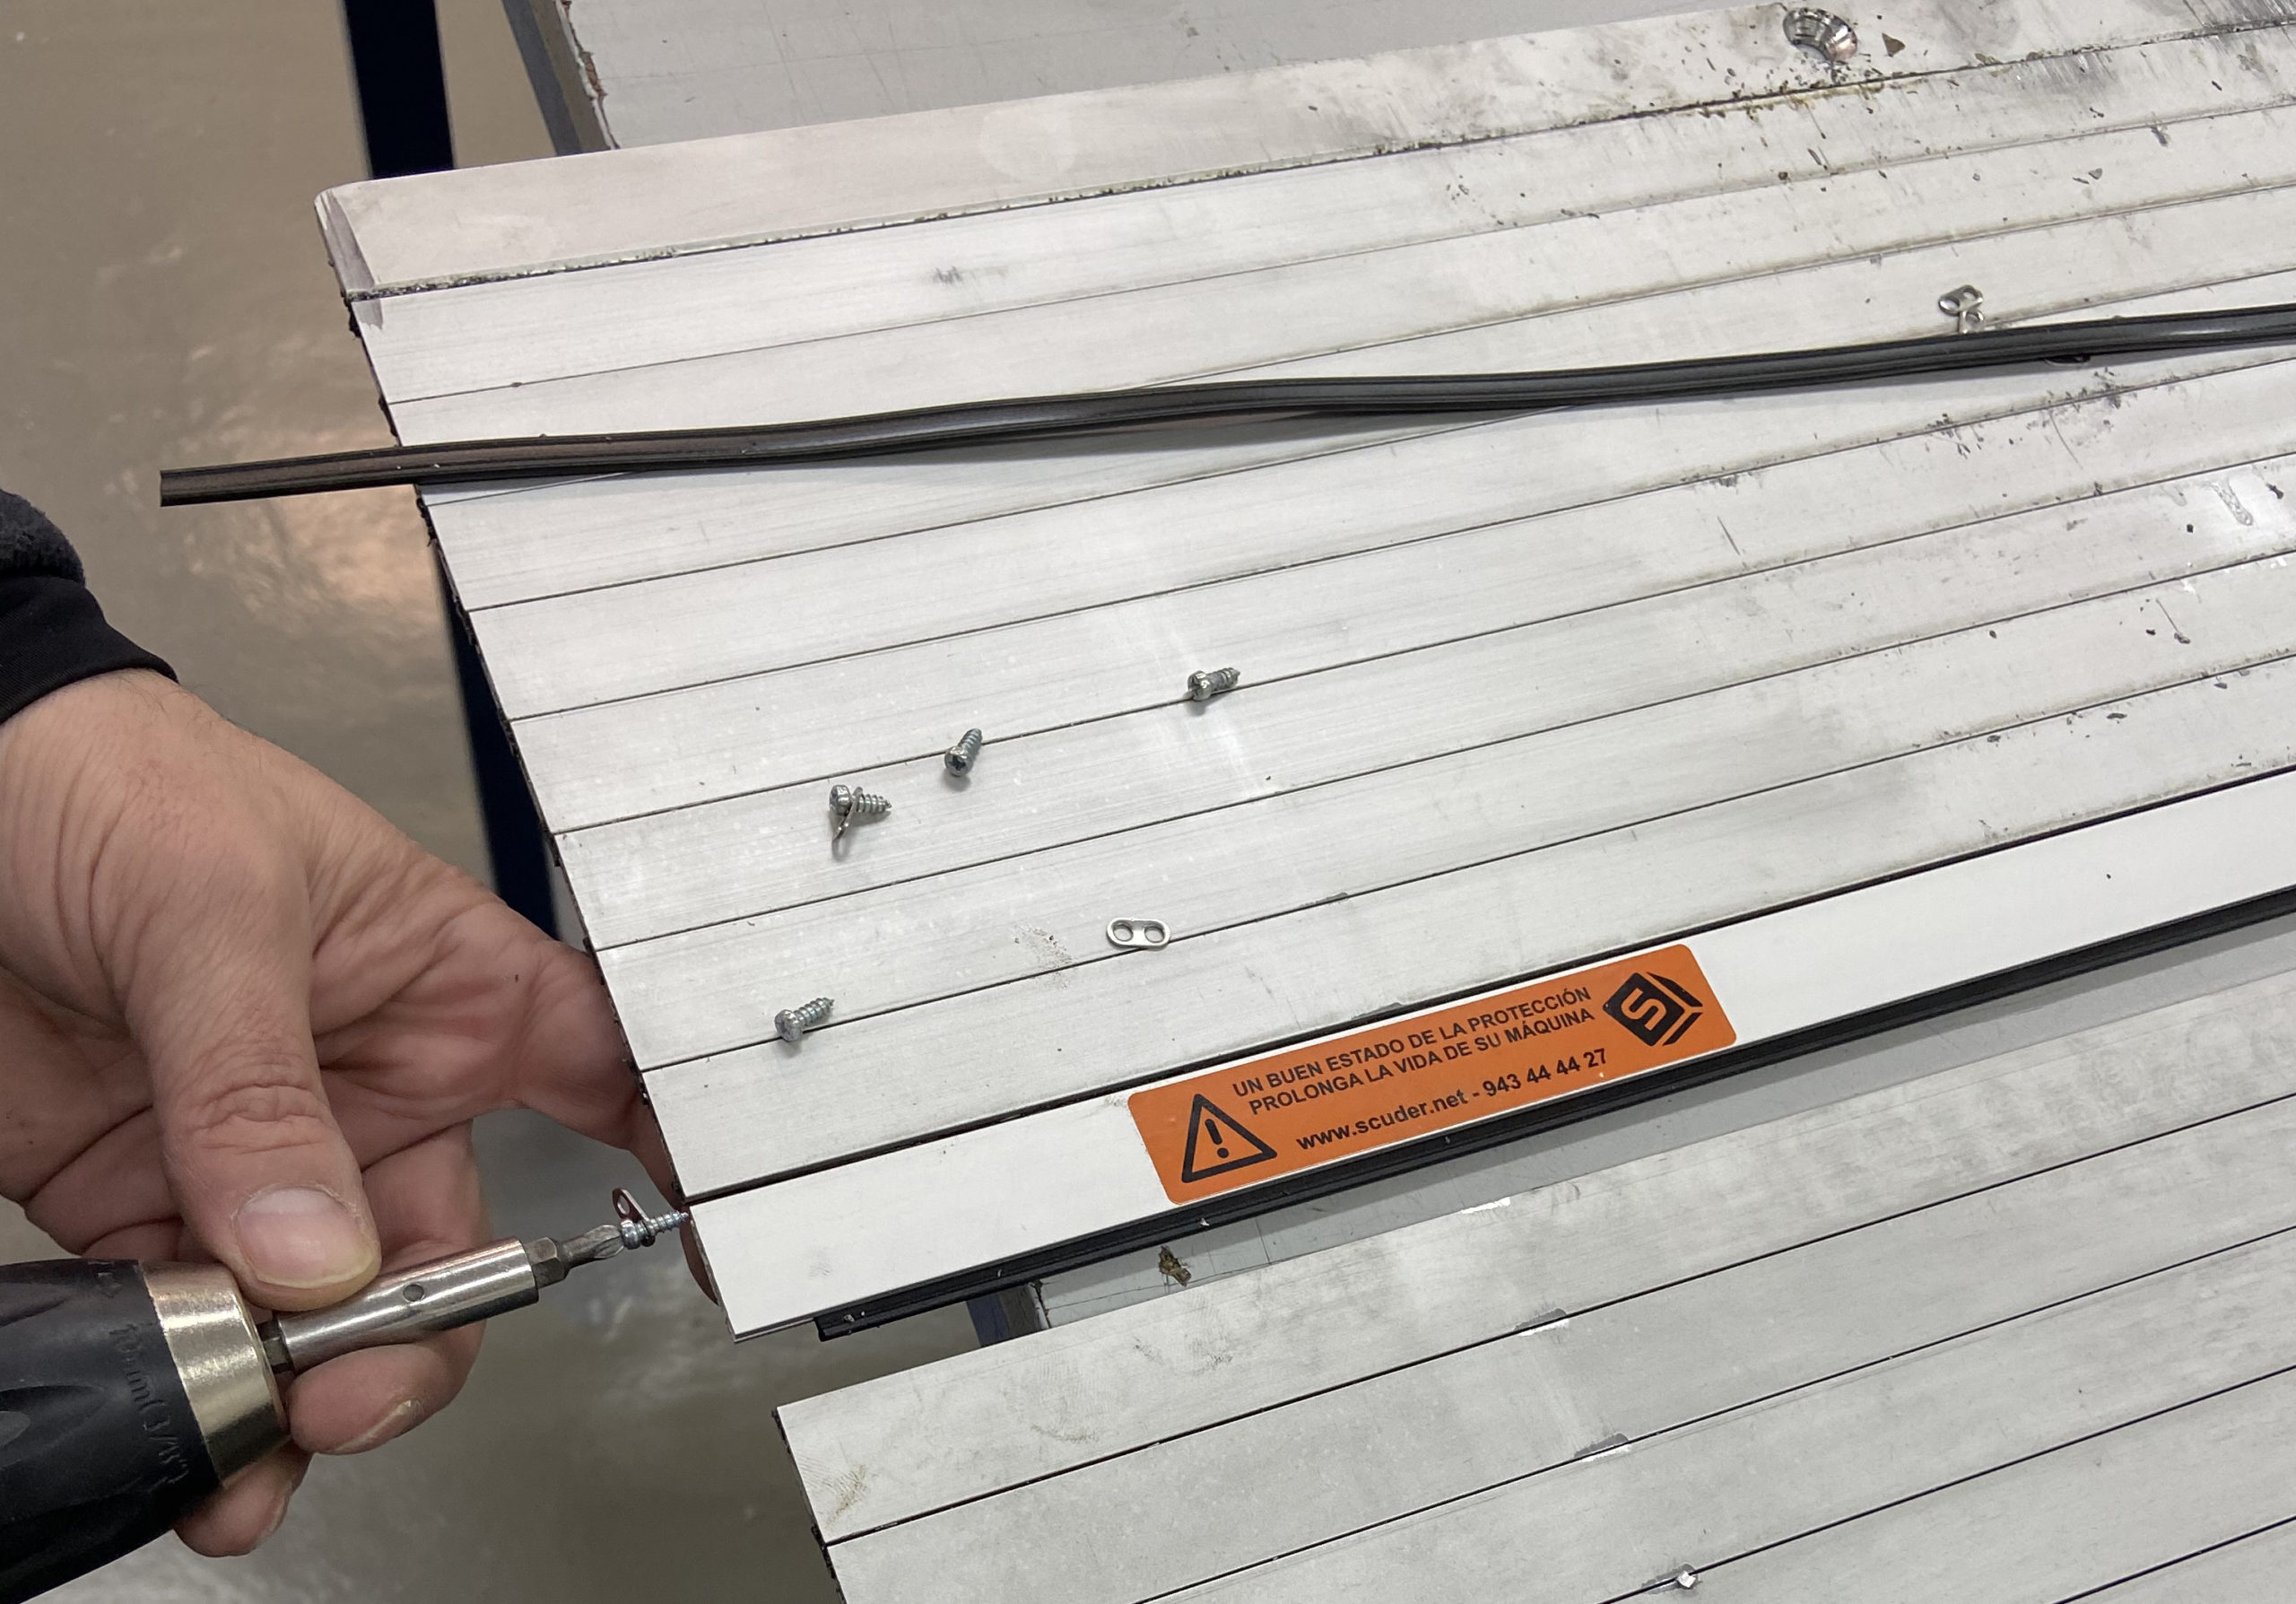 Repairing protection blinds for machines with reel